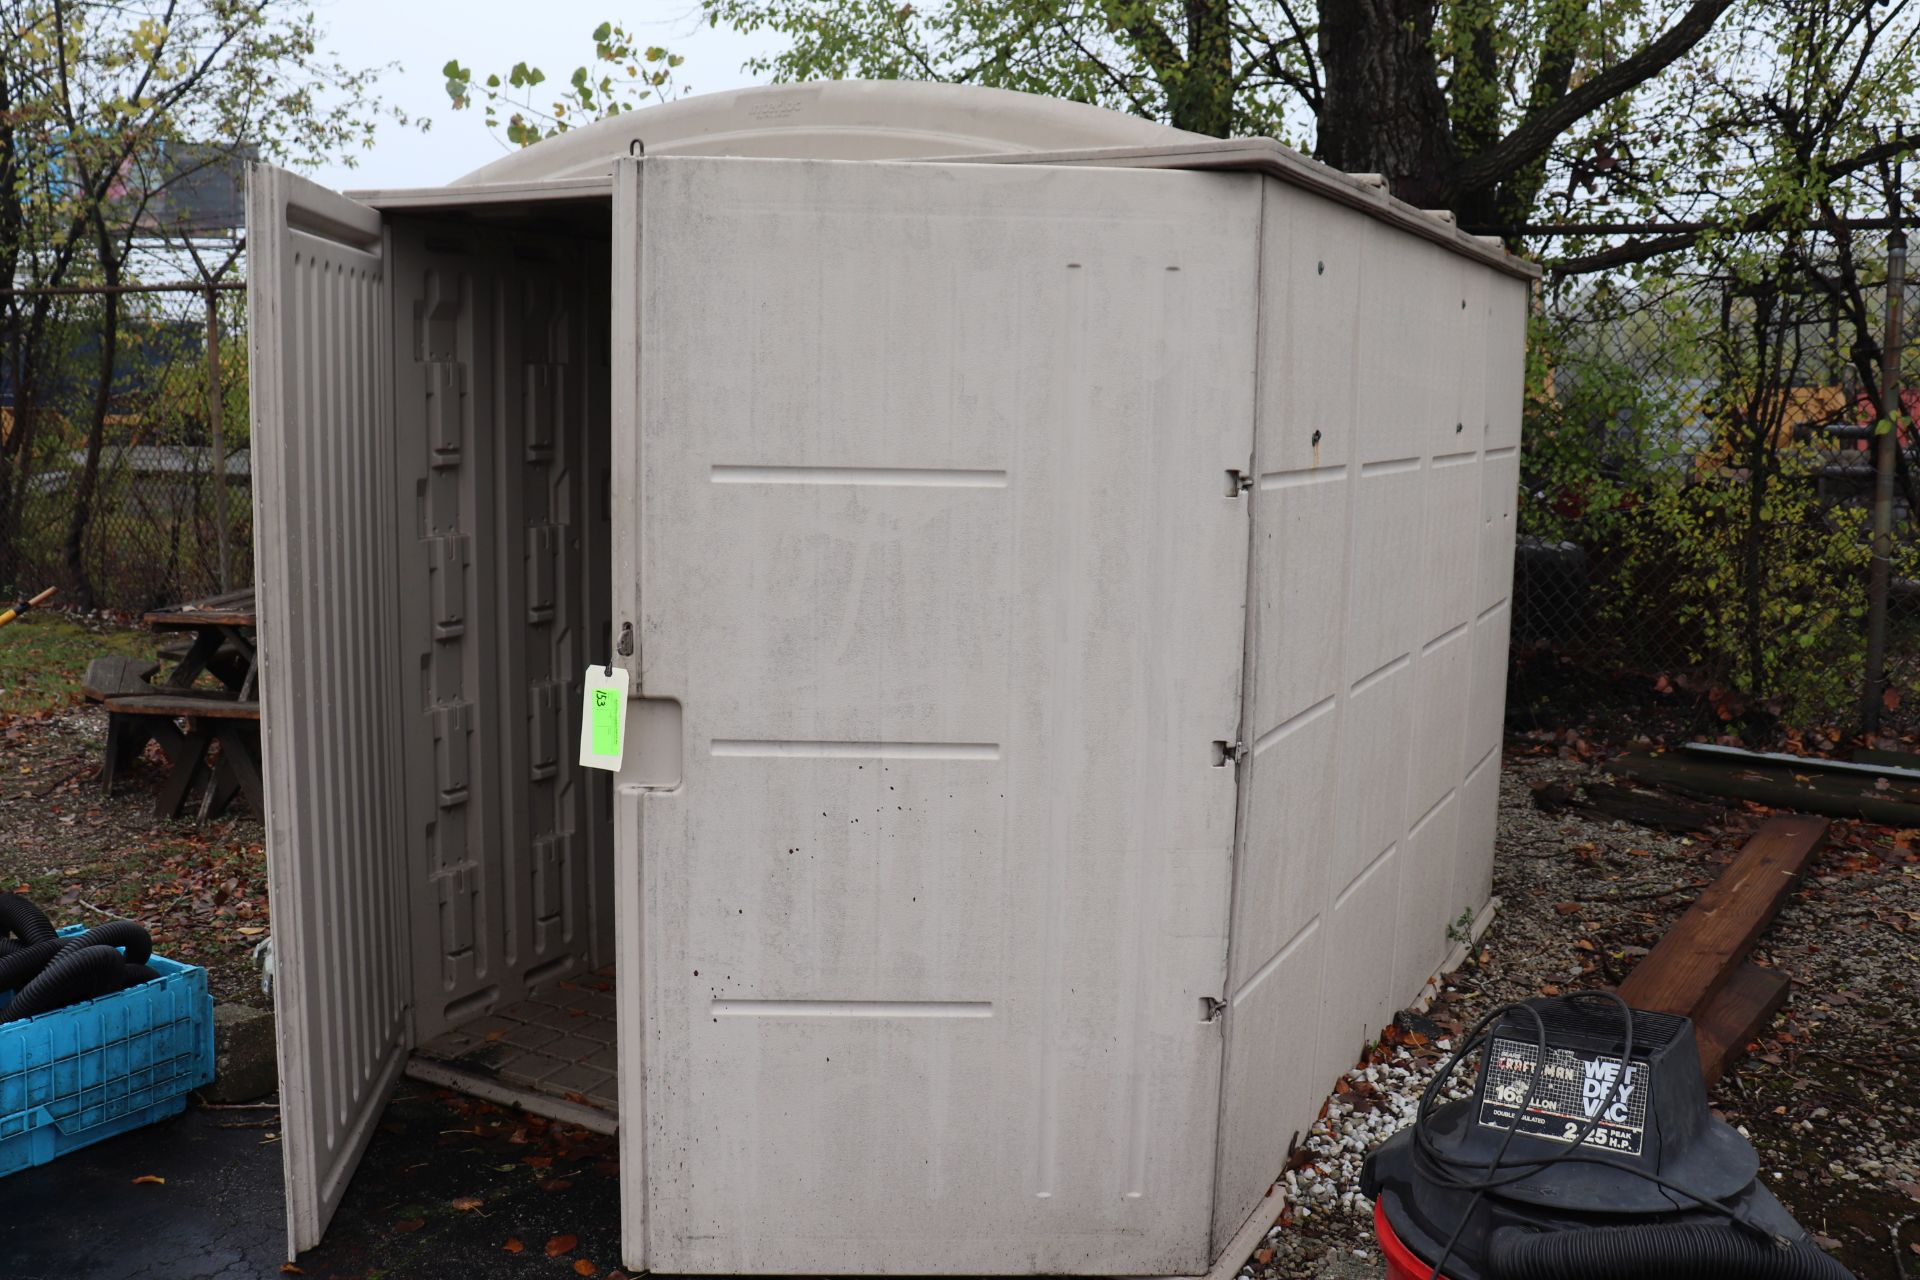 Interlock by PlayStar plastic shed, approximate size 5' x 6'